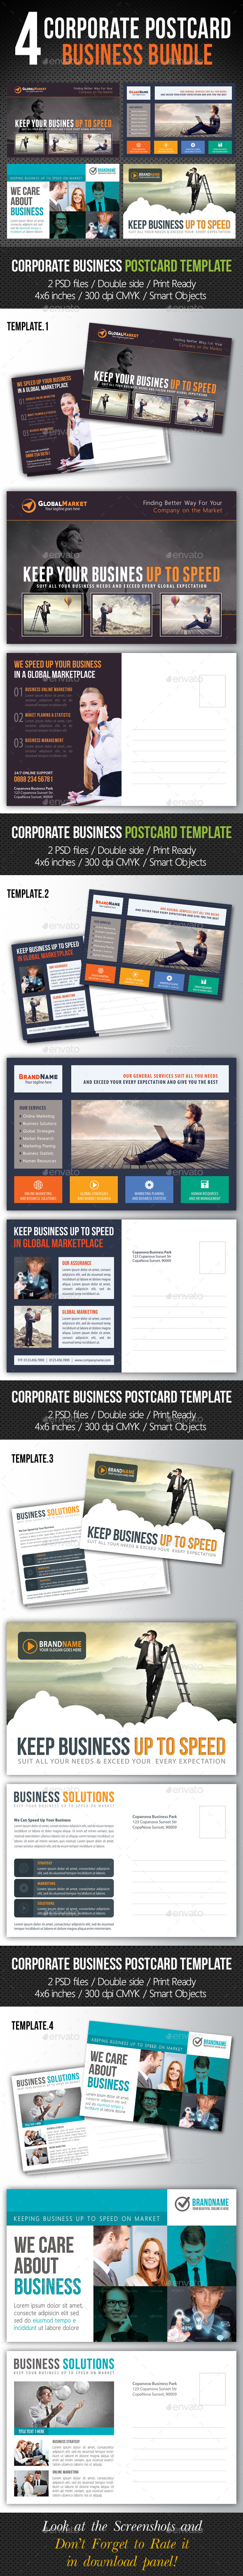 GraphicRiver 4 in 1 Corporate Business Postcard Bundle V02 10658529